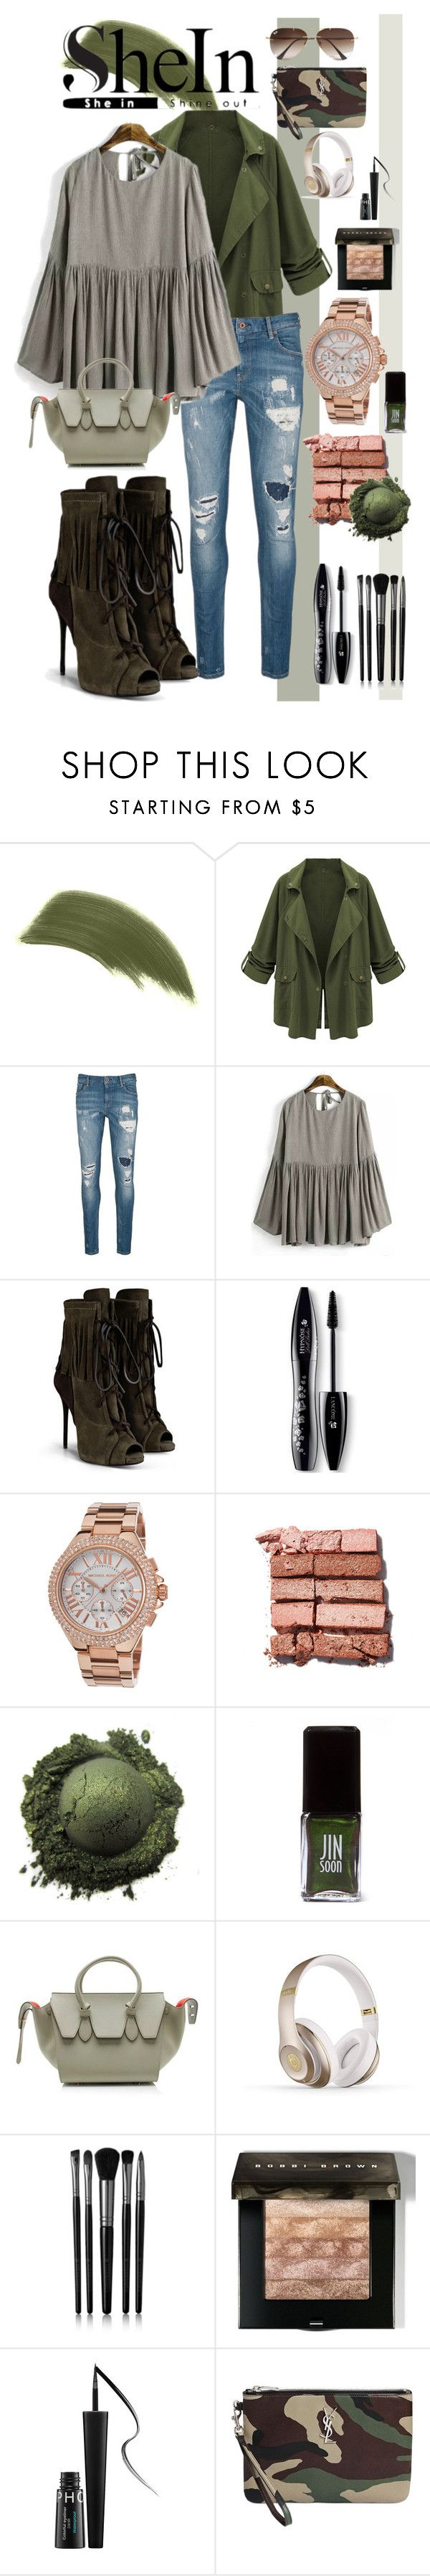 SheIn Chic by avericleanstyle on Polyvore featuring #celine, #YvesSaintLaurent, #MichaelKors, #RayBan, #Scotch&Soda, #ByTerry, #BobbiBrownCosmetics, #Lancome, #Illamasqua and #SephoraCollection